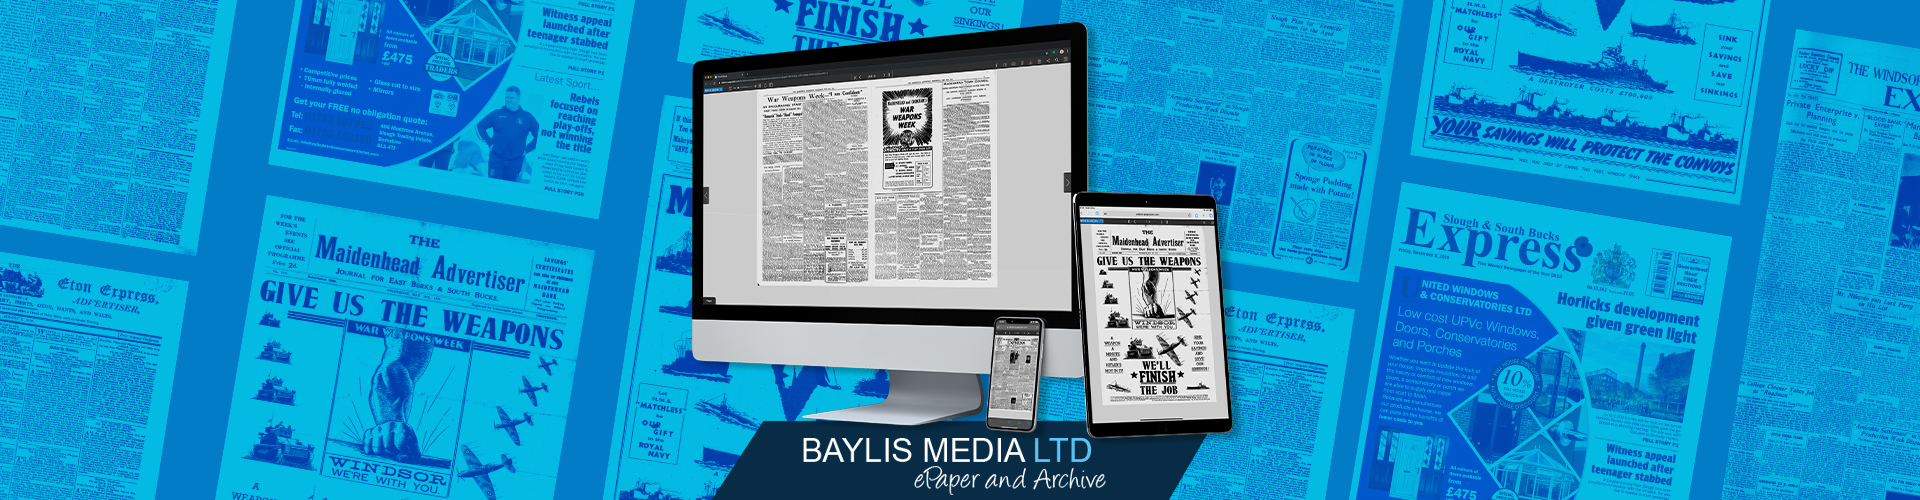 Baylis Media Ltd Launch a 200-Year Digital Archive with PageSuite